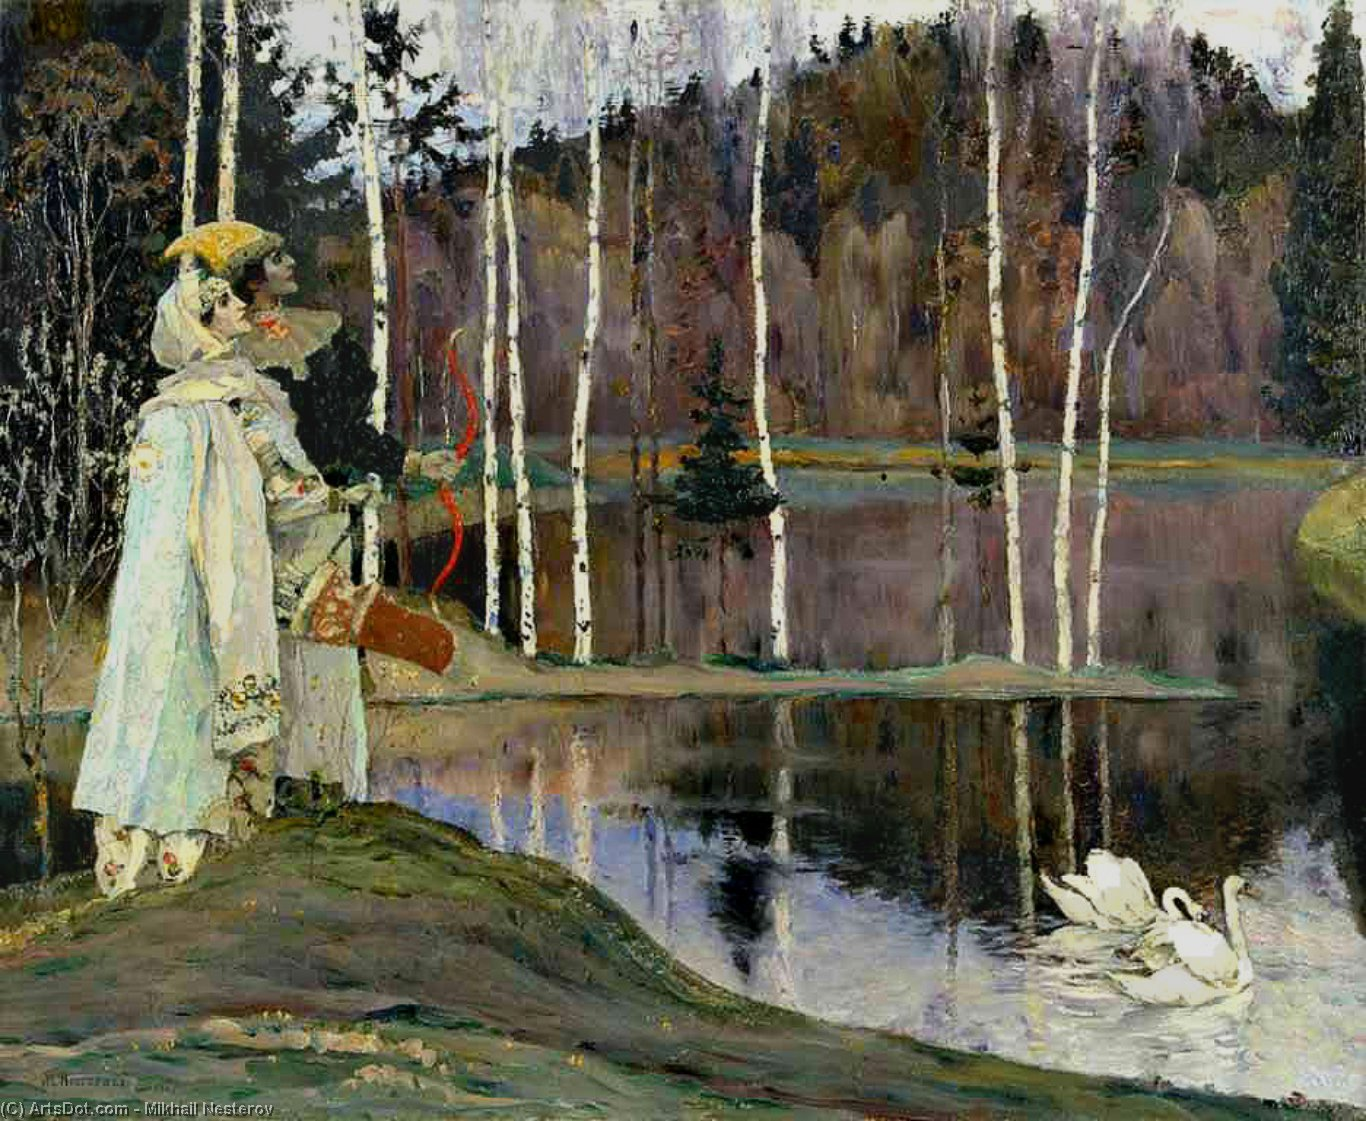 Harmony Concord, Oil On Canvas by Mikhail Nesterov (1862-1942, Russia)